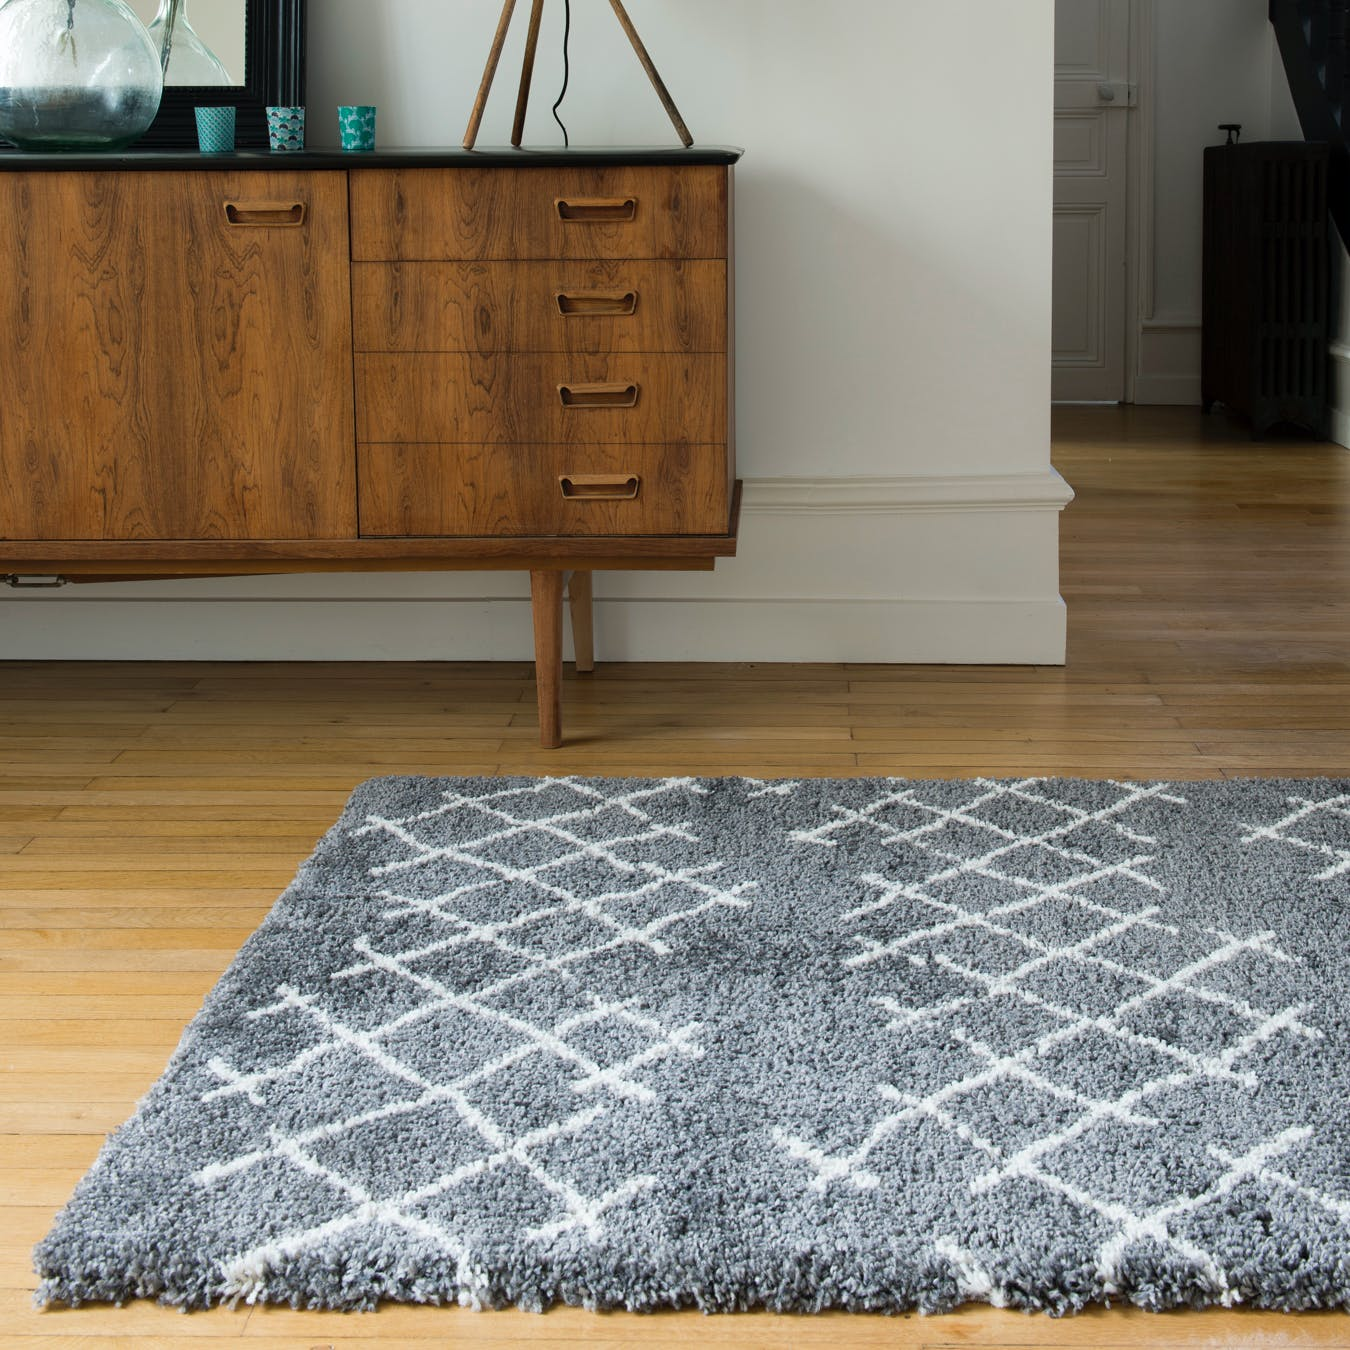 "Shaggy Rug ""Voyager"" in Grey (120x170 cm)"